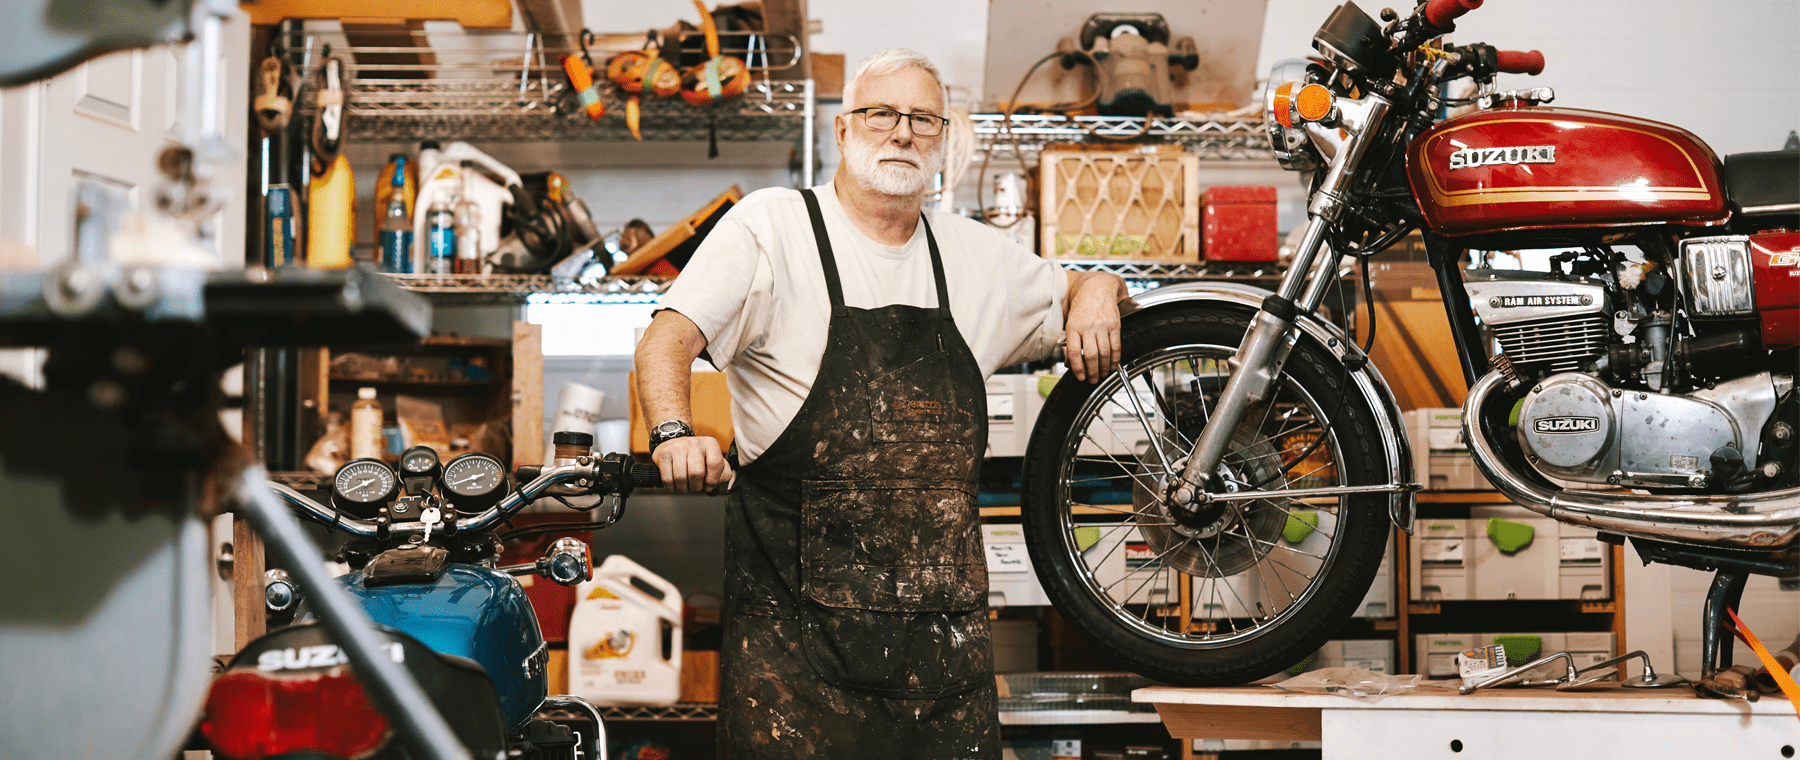 Easy Rider: A Collector's Passion for the Old and Original